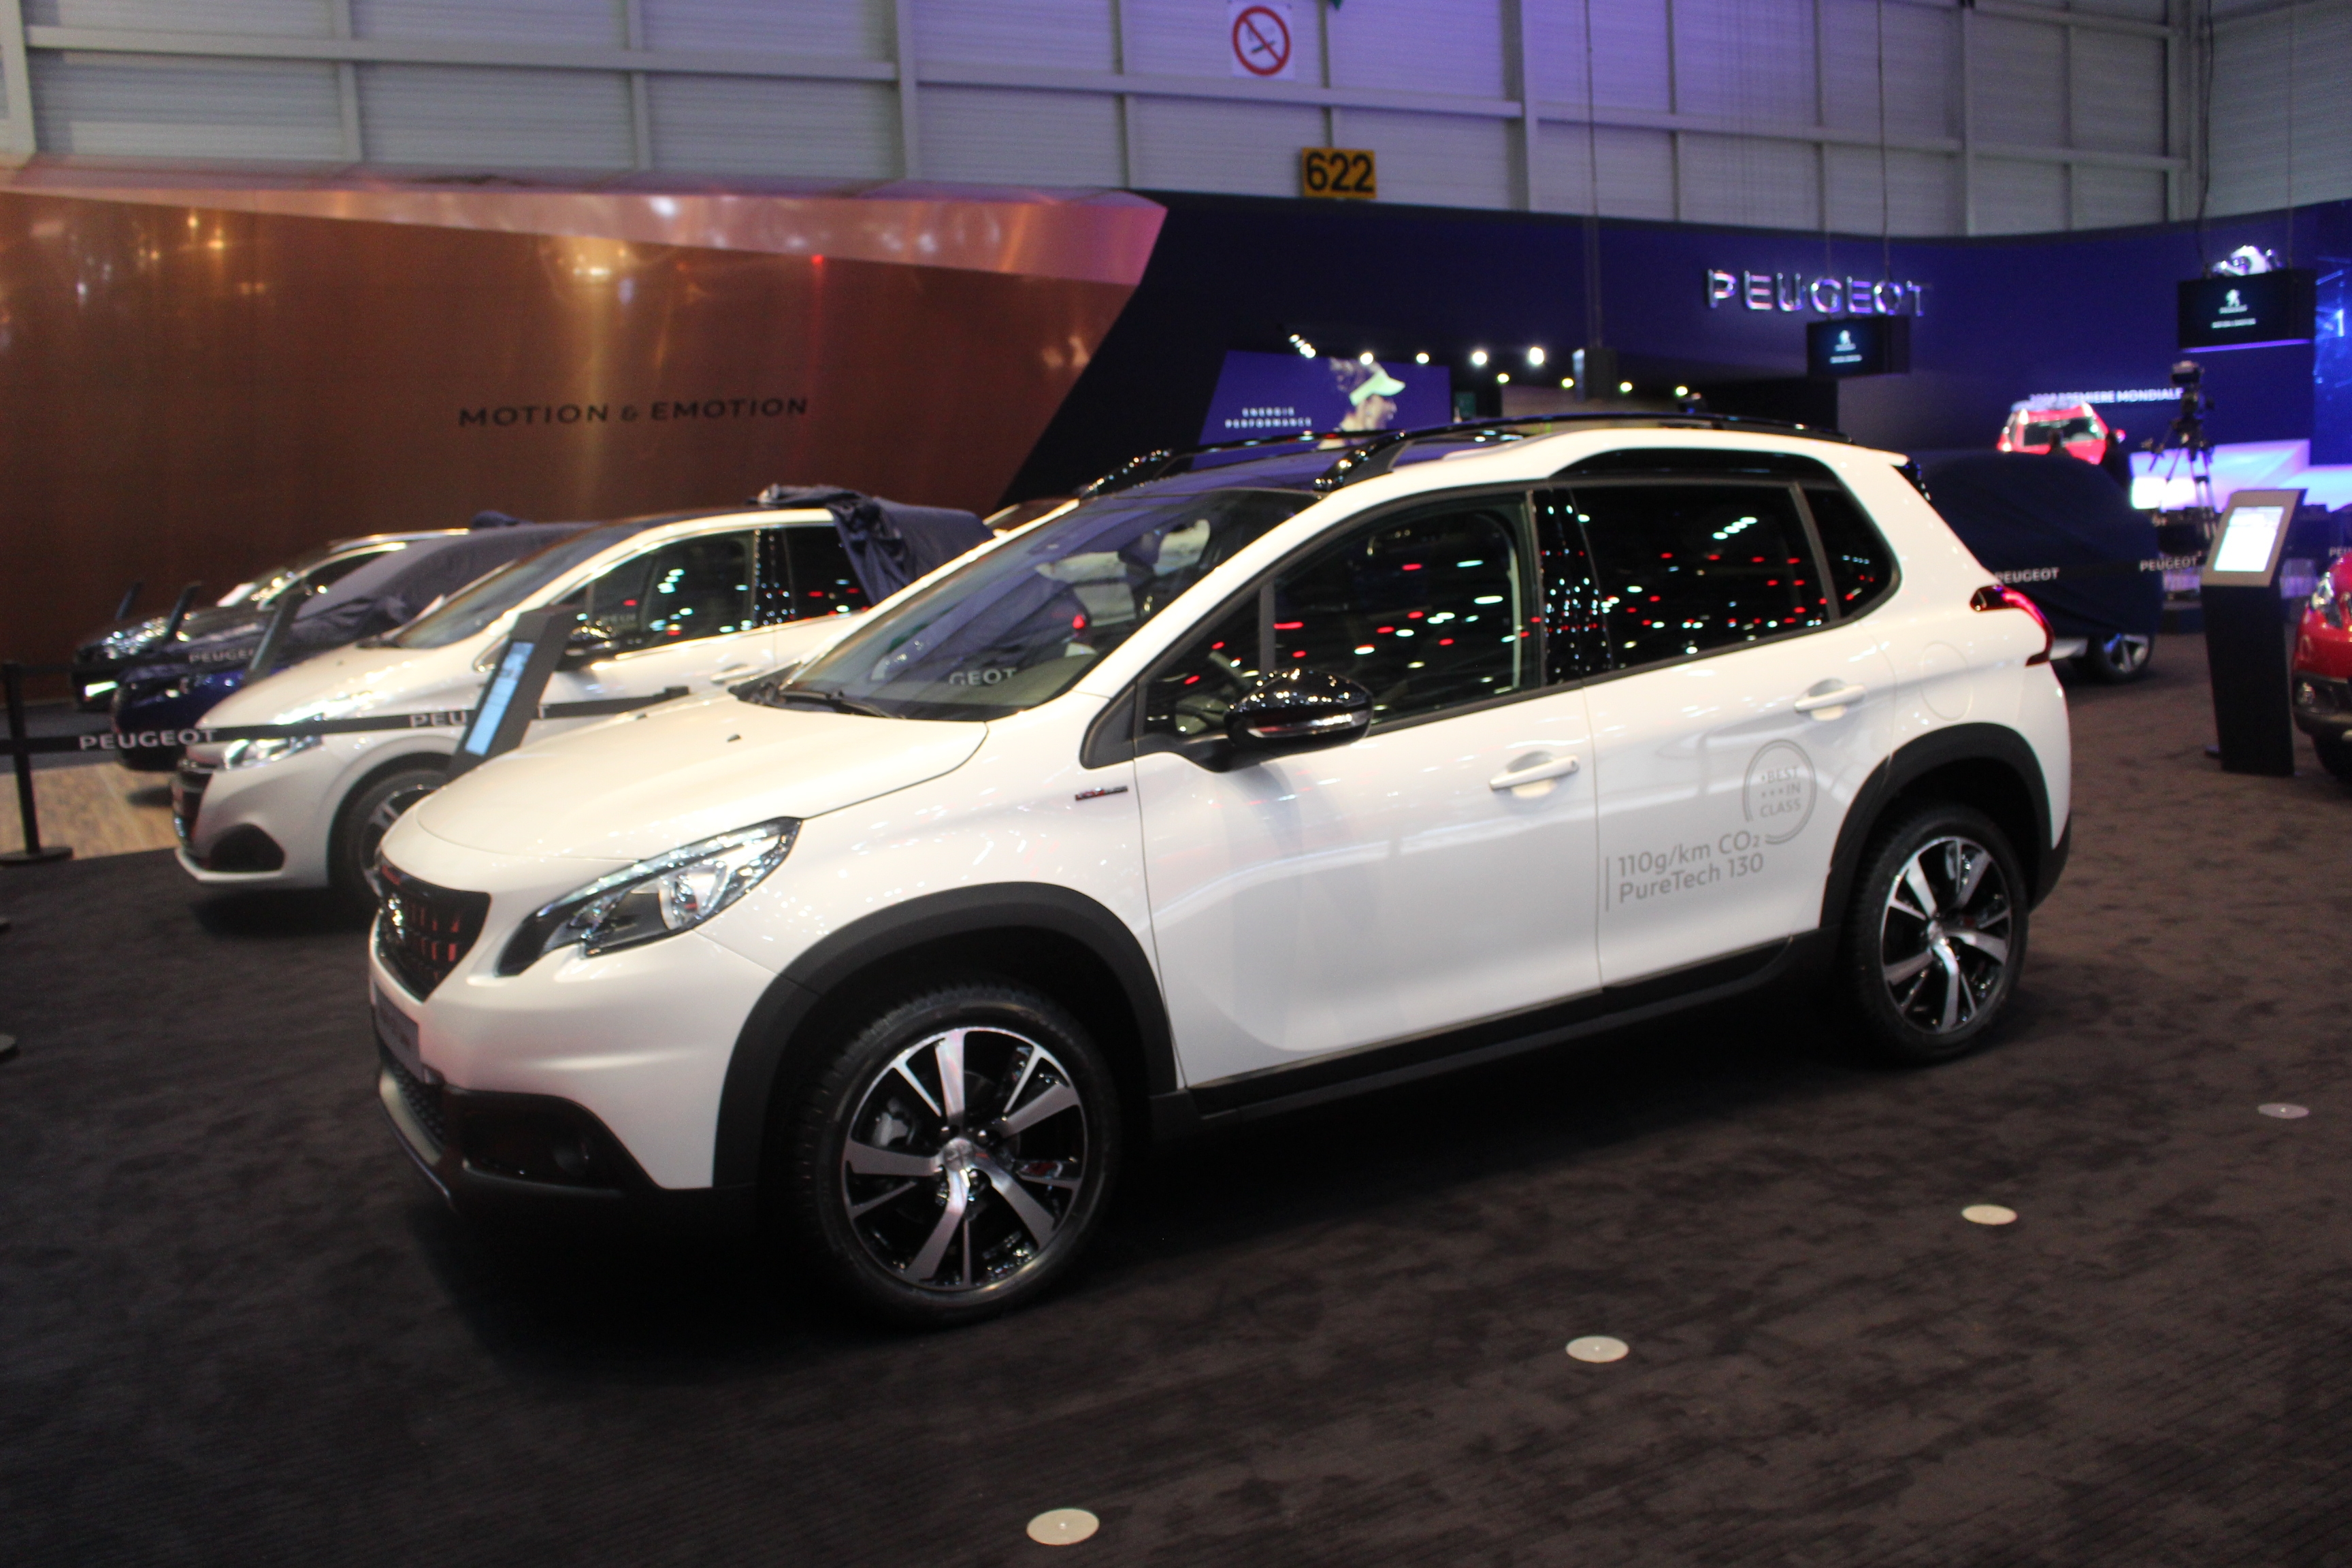 Peugeot 2008 restyl e plus typ e vid o en direct du for Salon de la photo 2016